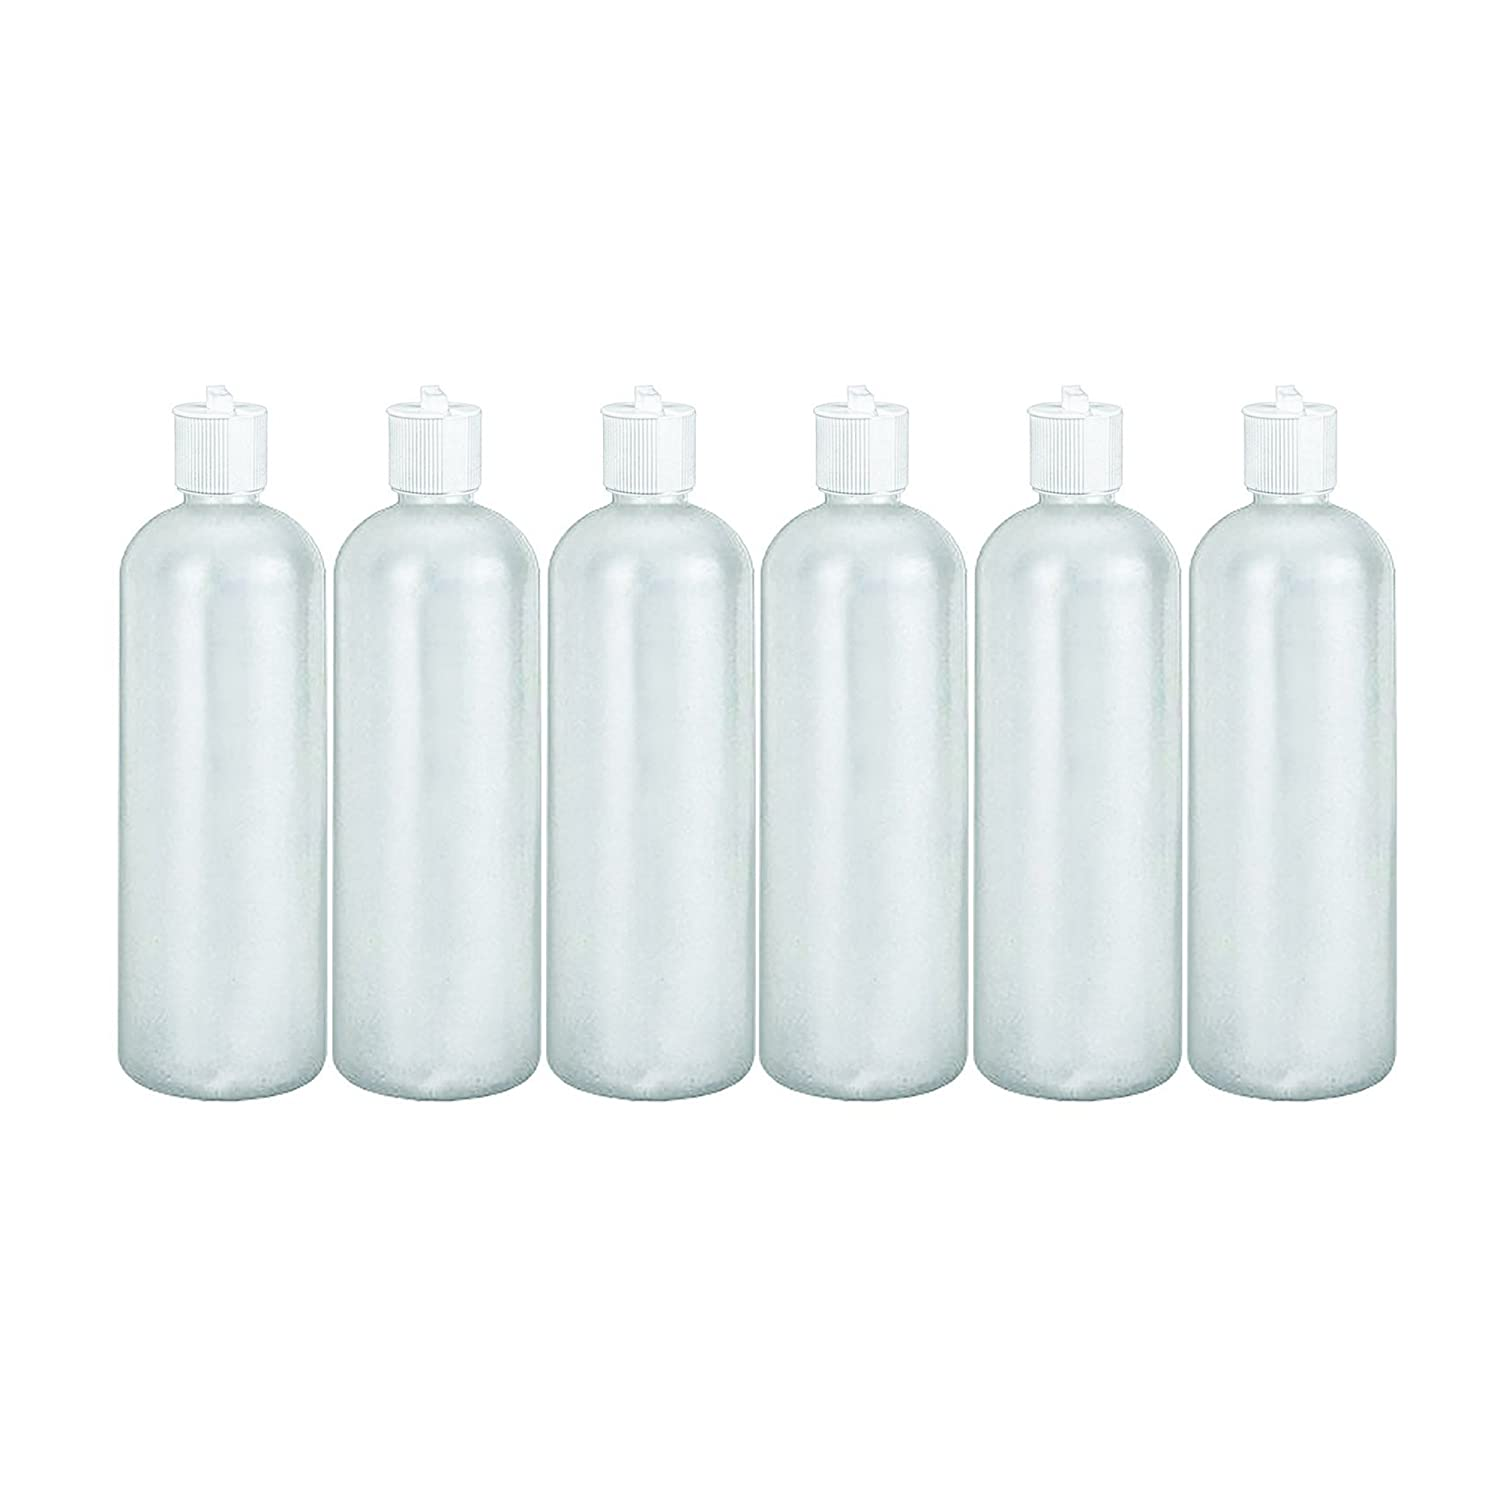 MoYo Natural Labs 32 oz Refillable Squirt Bottles, Empty Travel Containers with Turret Caps, One Quart Travel Bottles, BPA Free HDPE Plastic Squeezable Toiletry Cosmetics Bottle Pack of 6, White